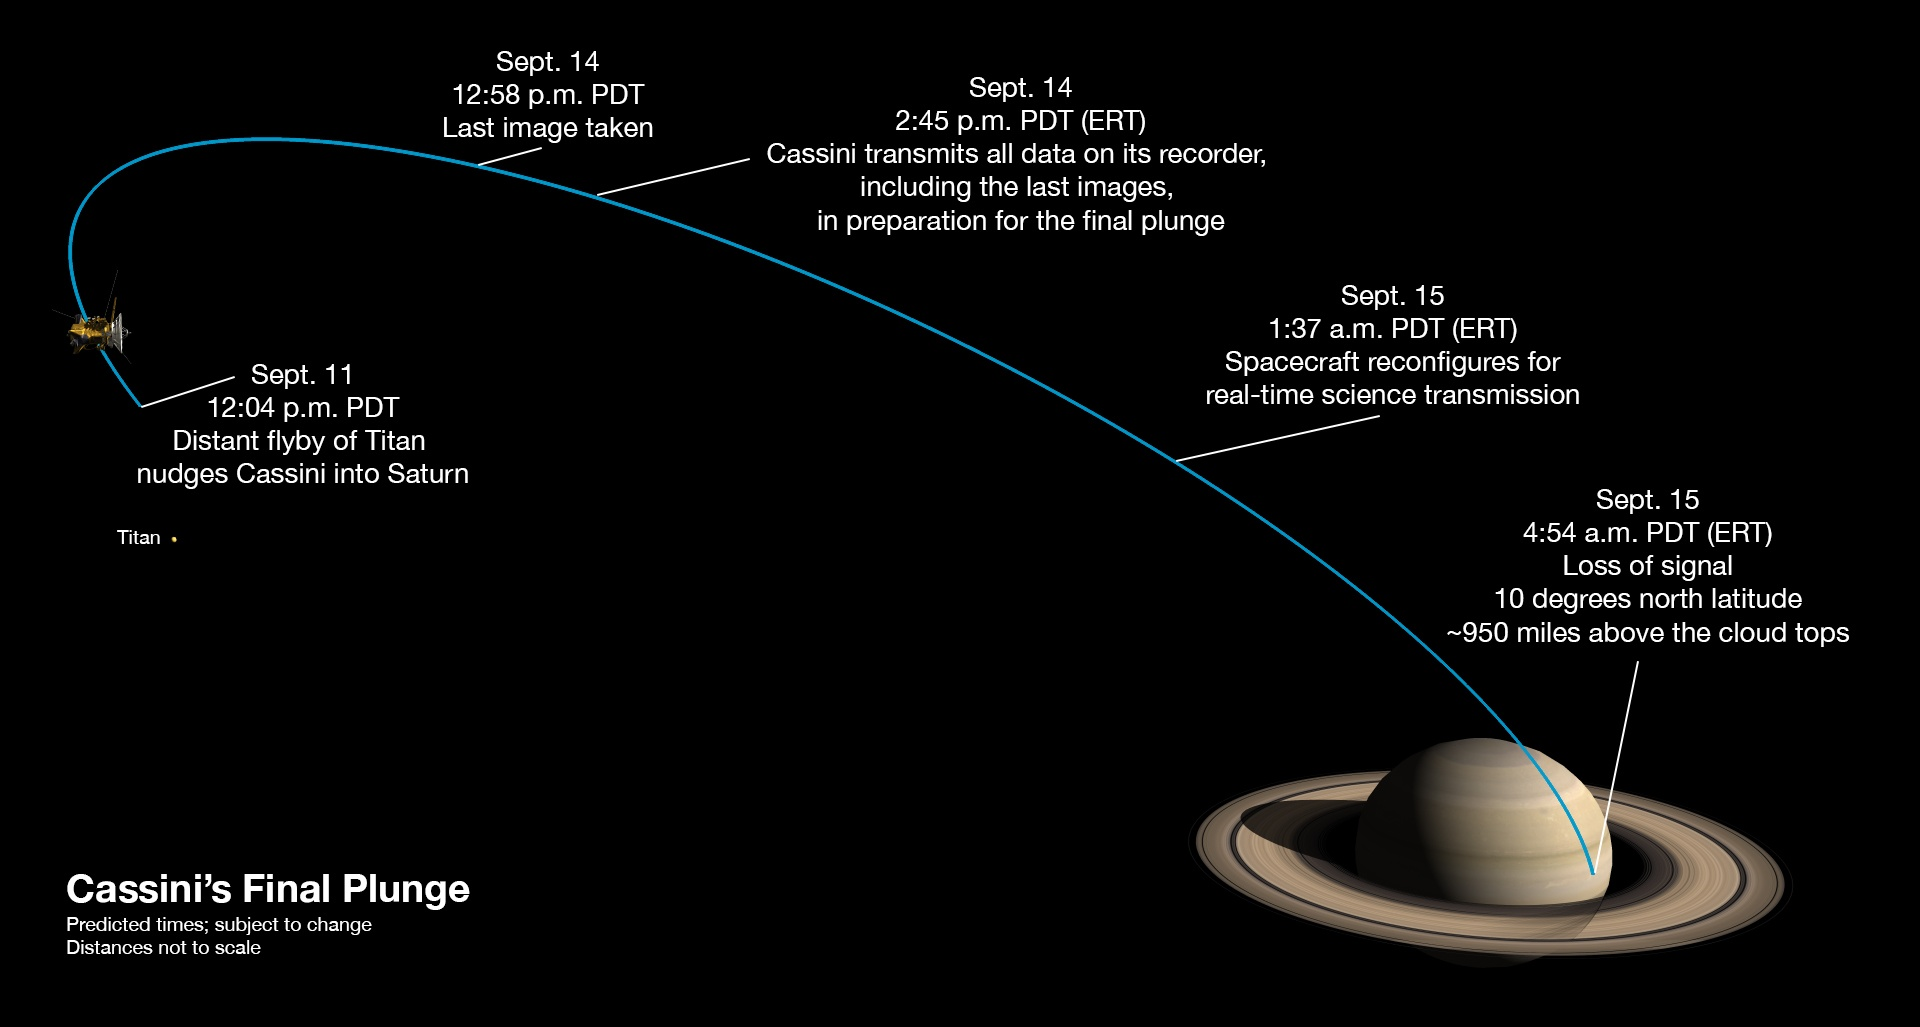 Diagram of Cassini's final week (times are predicted and subject to change). Image: NASA/JPL-Caltech